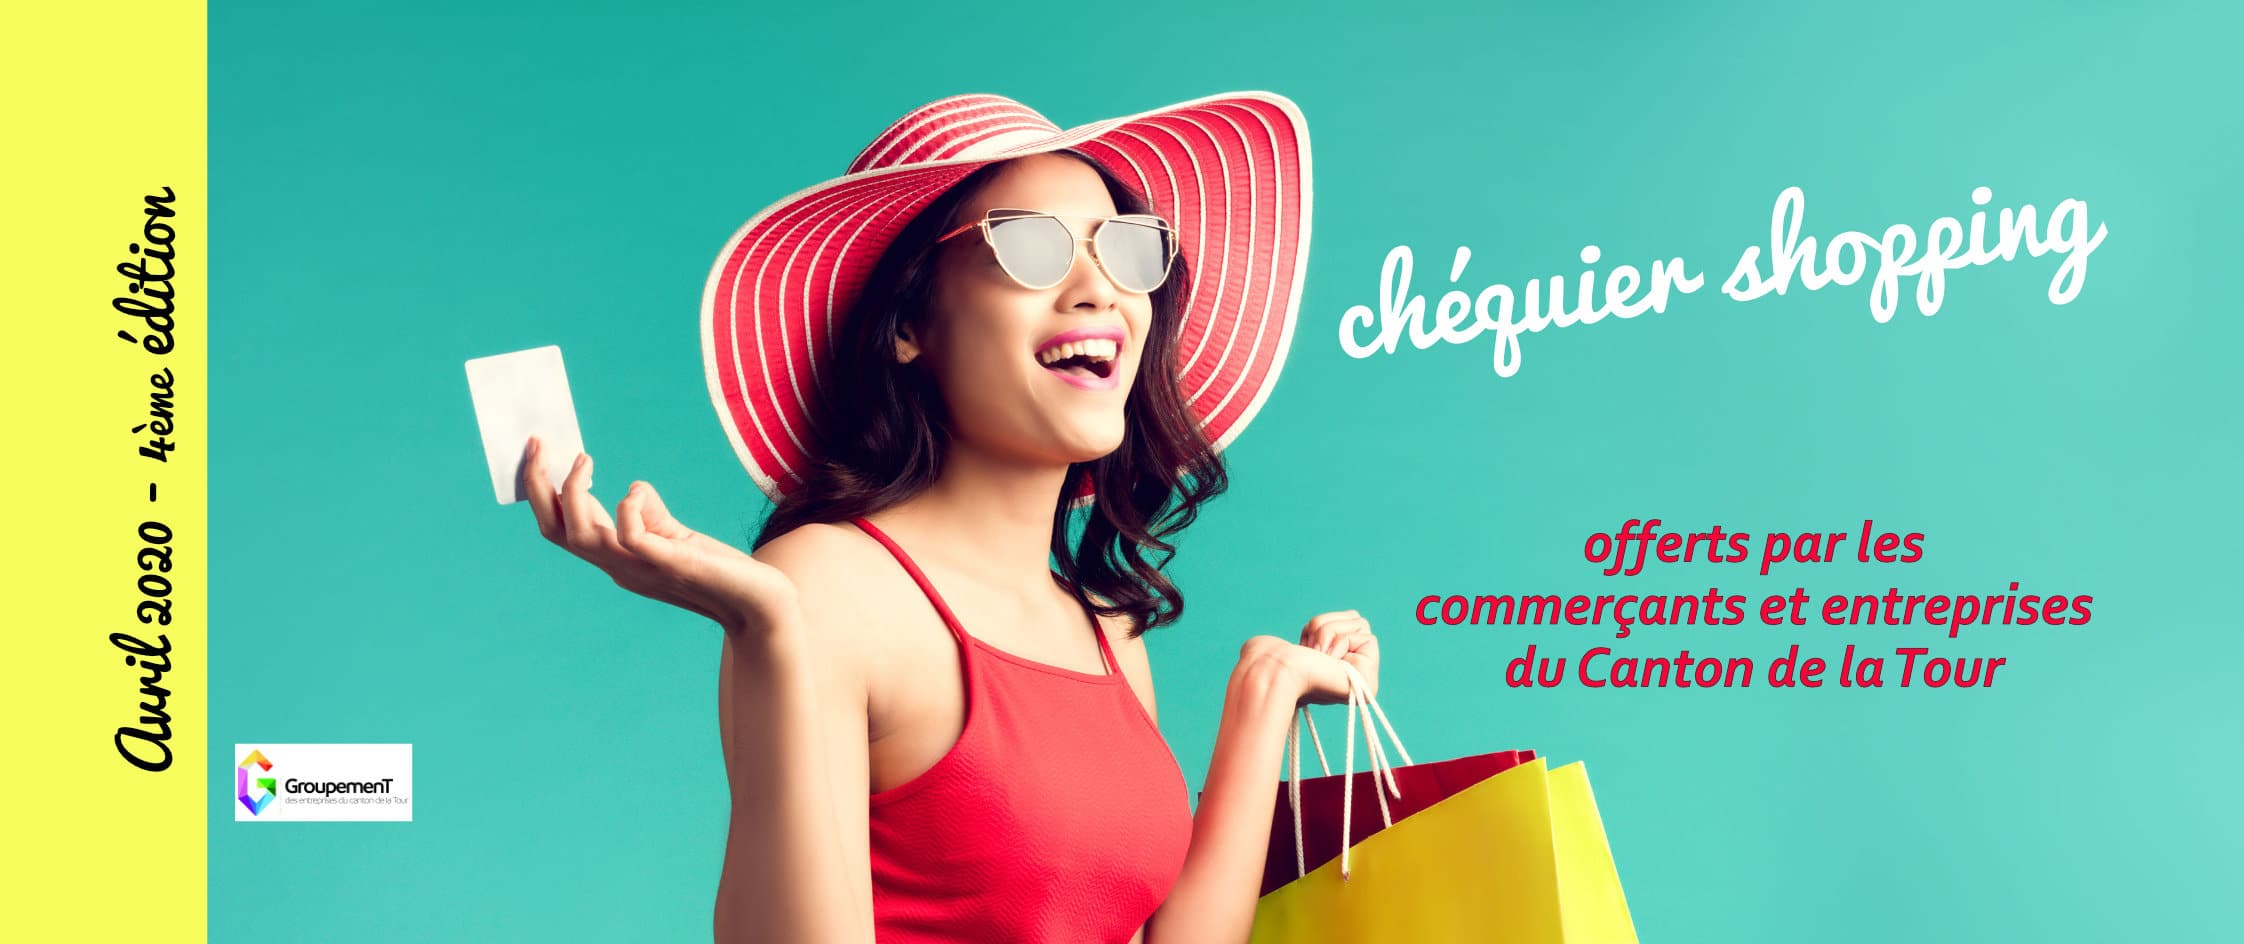 Prolongation du chéquier shopping